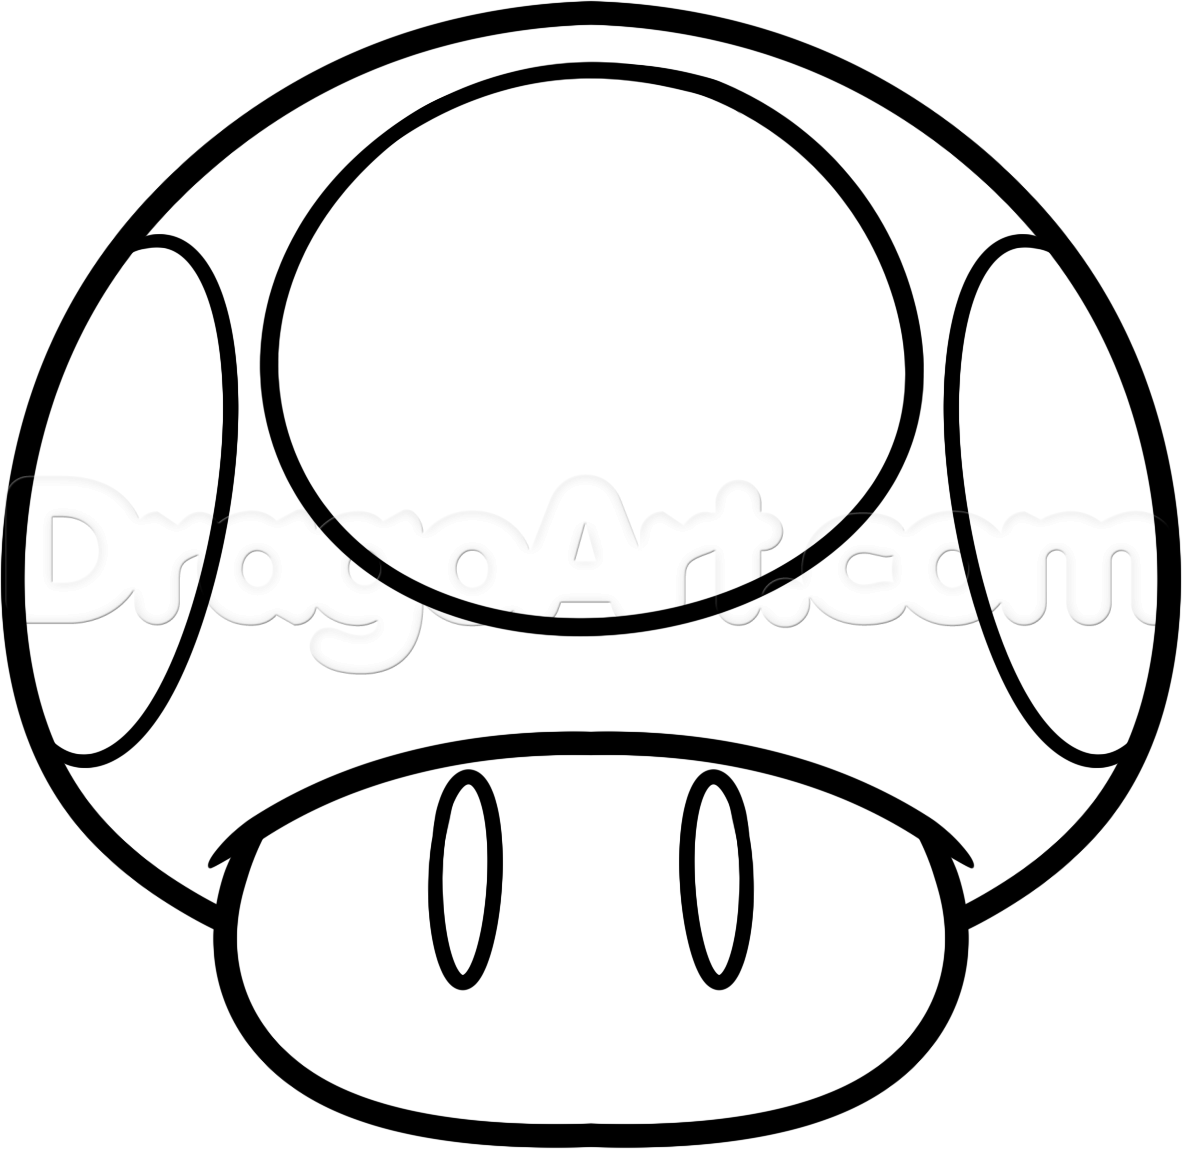 How To Draw The Mario Mushroom Step By Step Video Game Characters Pop Culture Free Online Mushroom Drawing Super Mario Coloring Pages Mario Coloring Pages